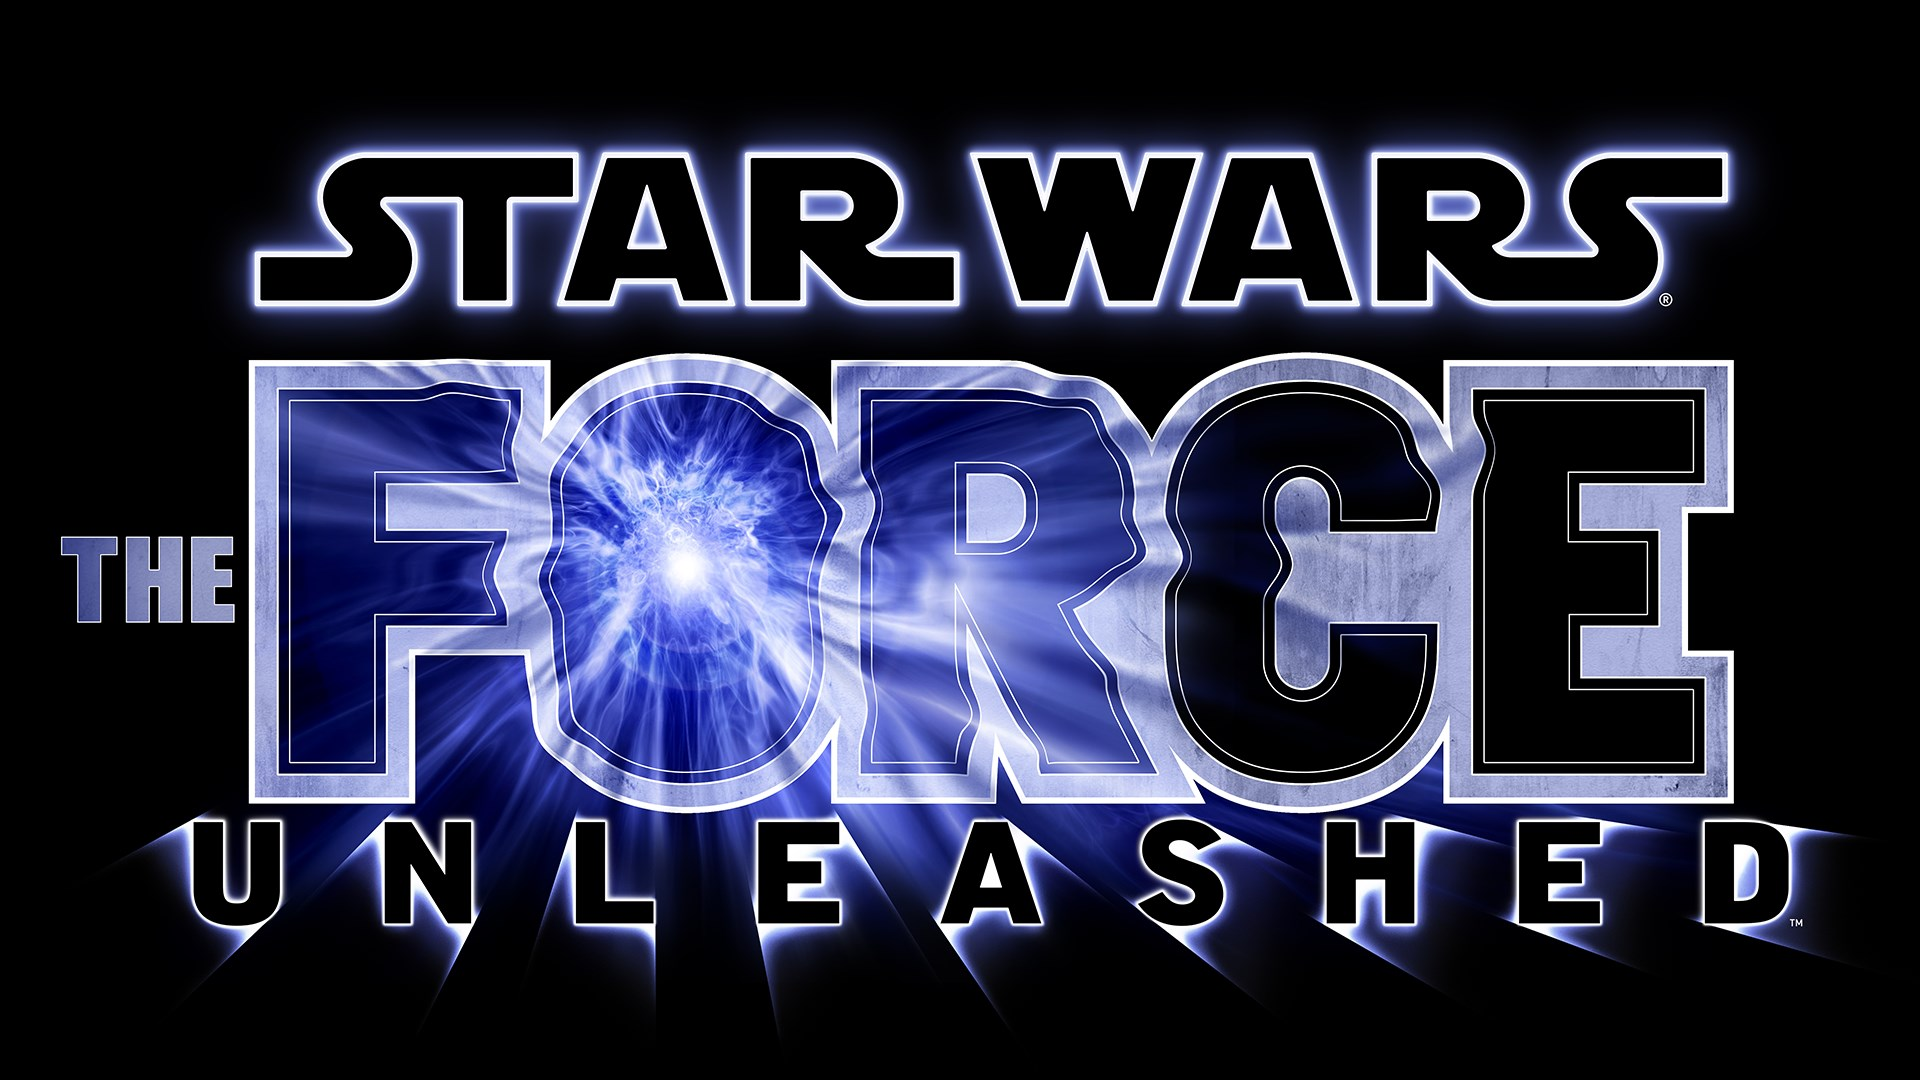 Buy Star Wars The Force Unleashed Character Pack 2 Microsoft Store